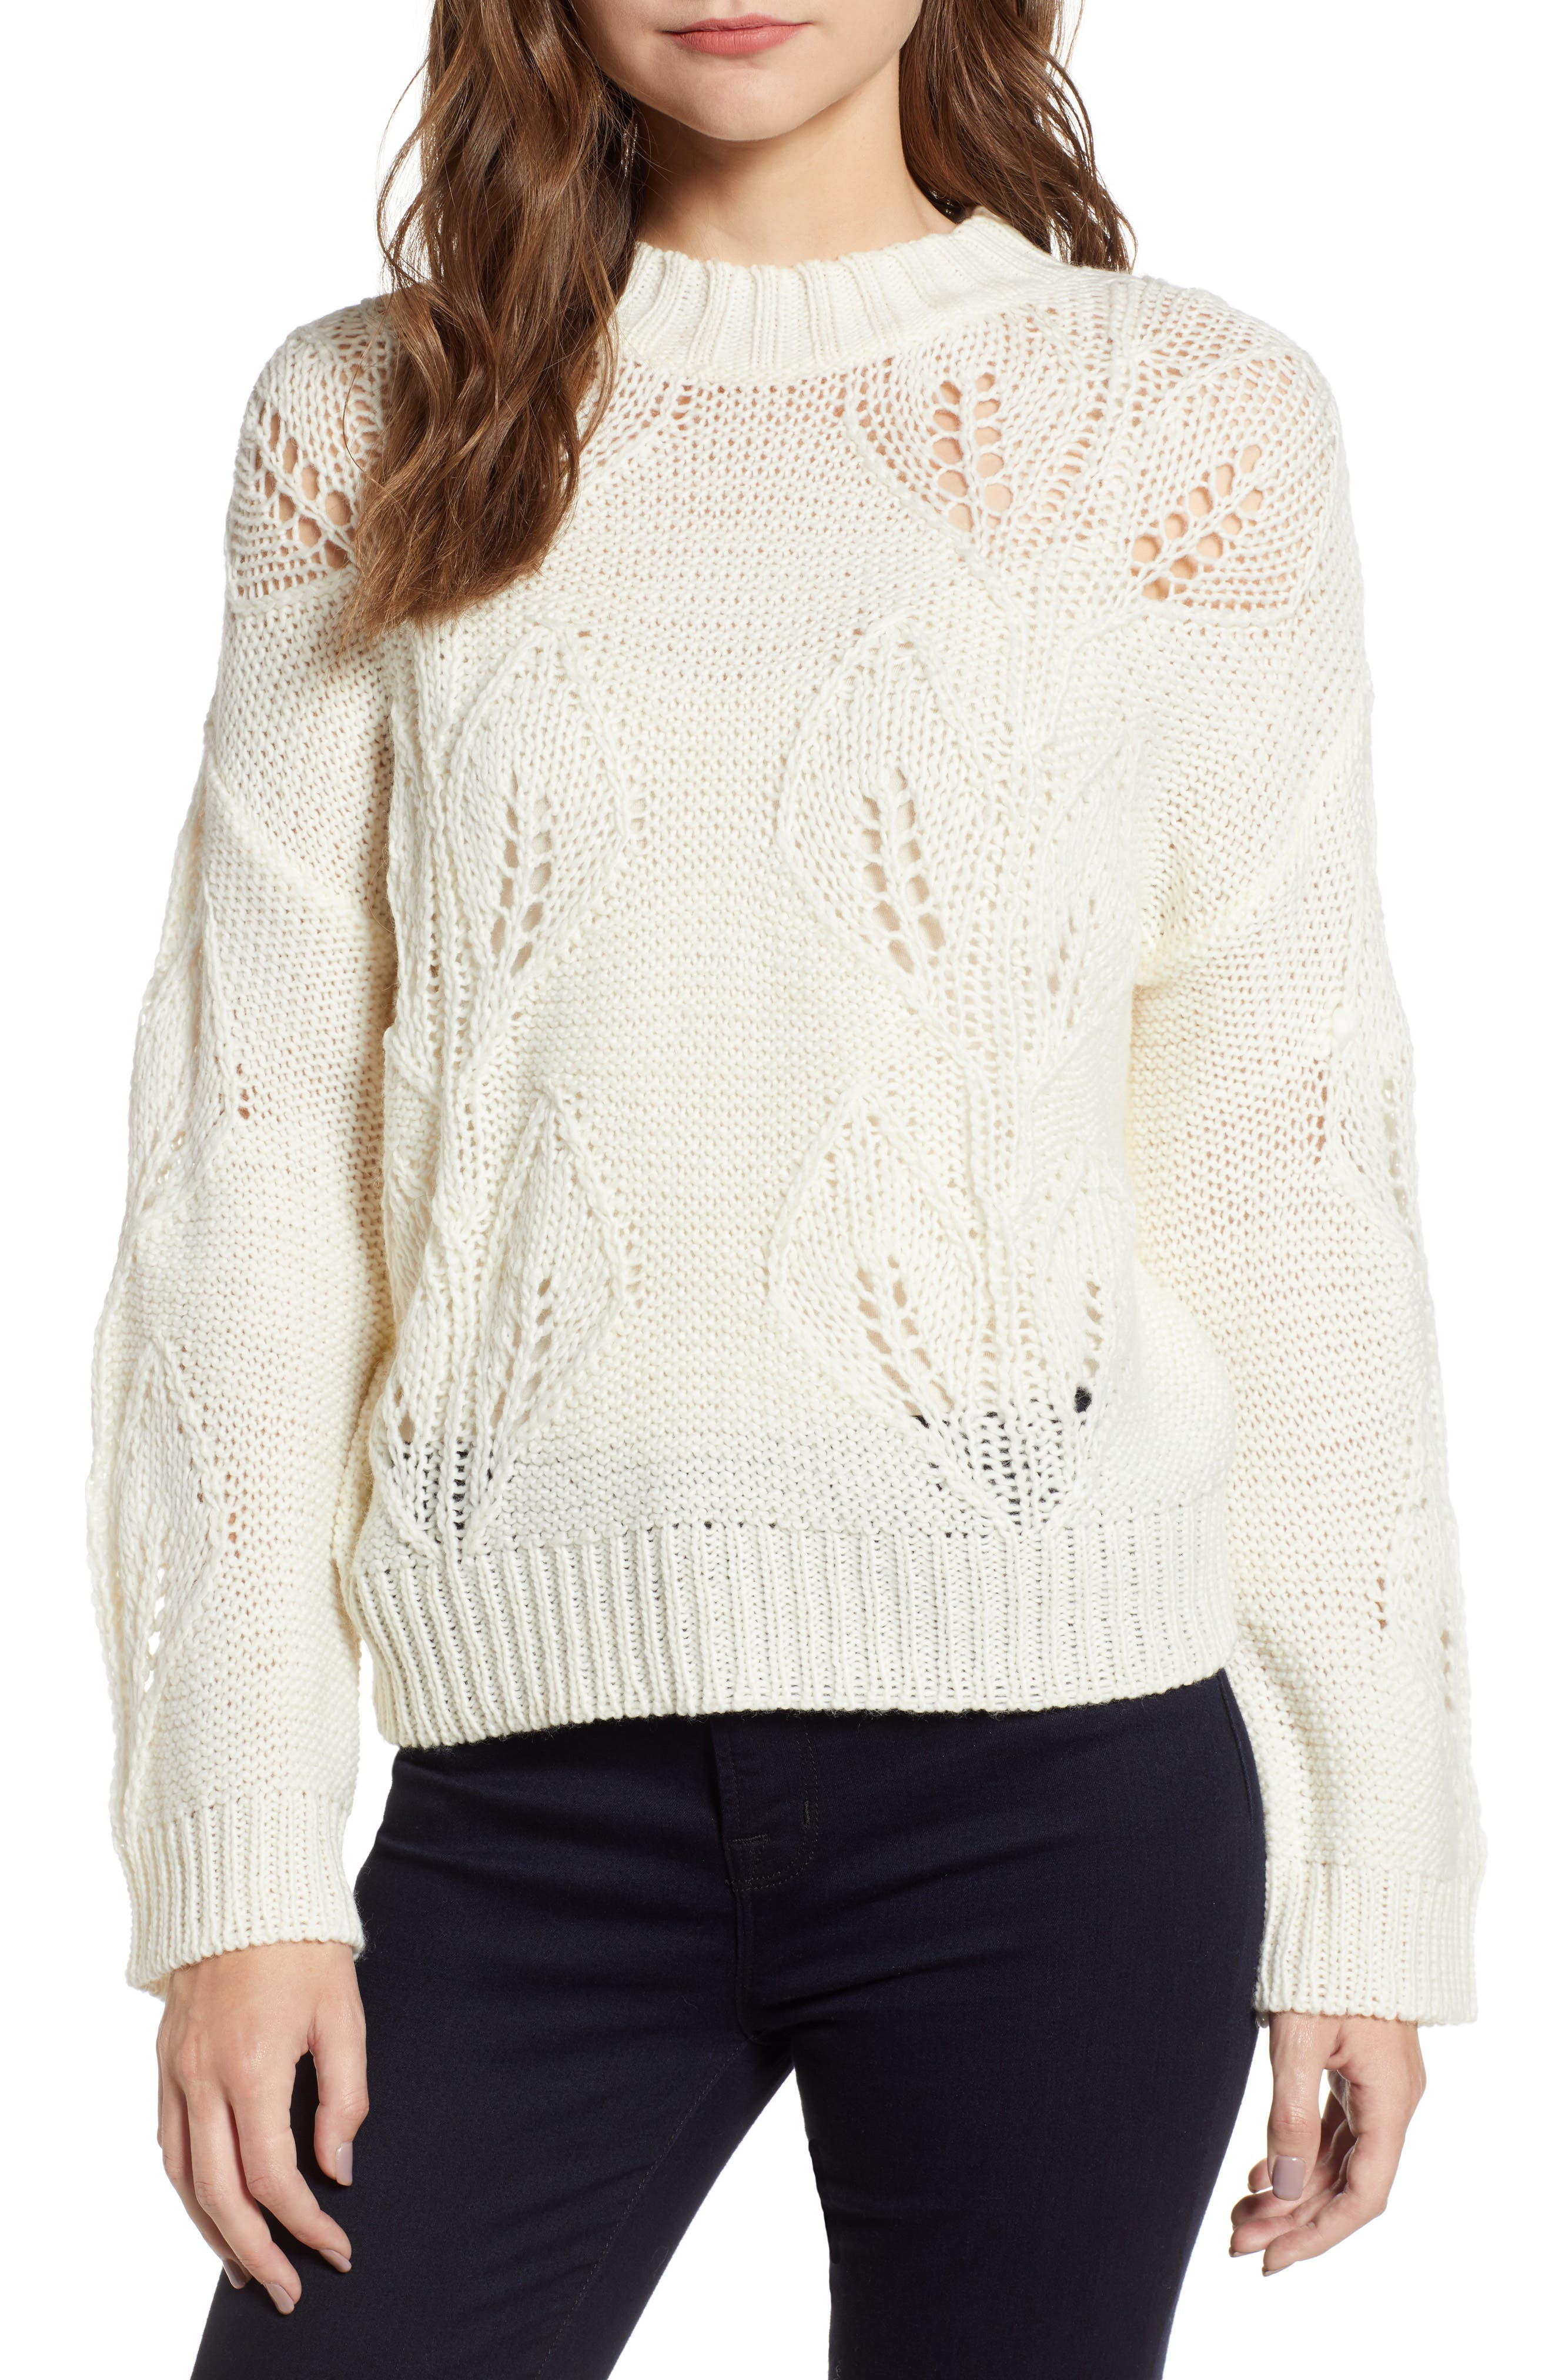 Bishop + Young Botanical Sweater,                         Main,                         color, CREAM